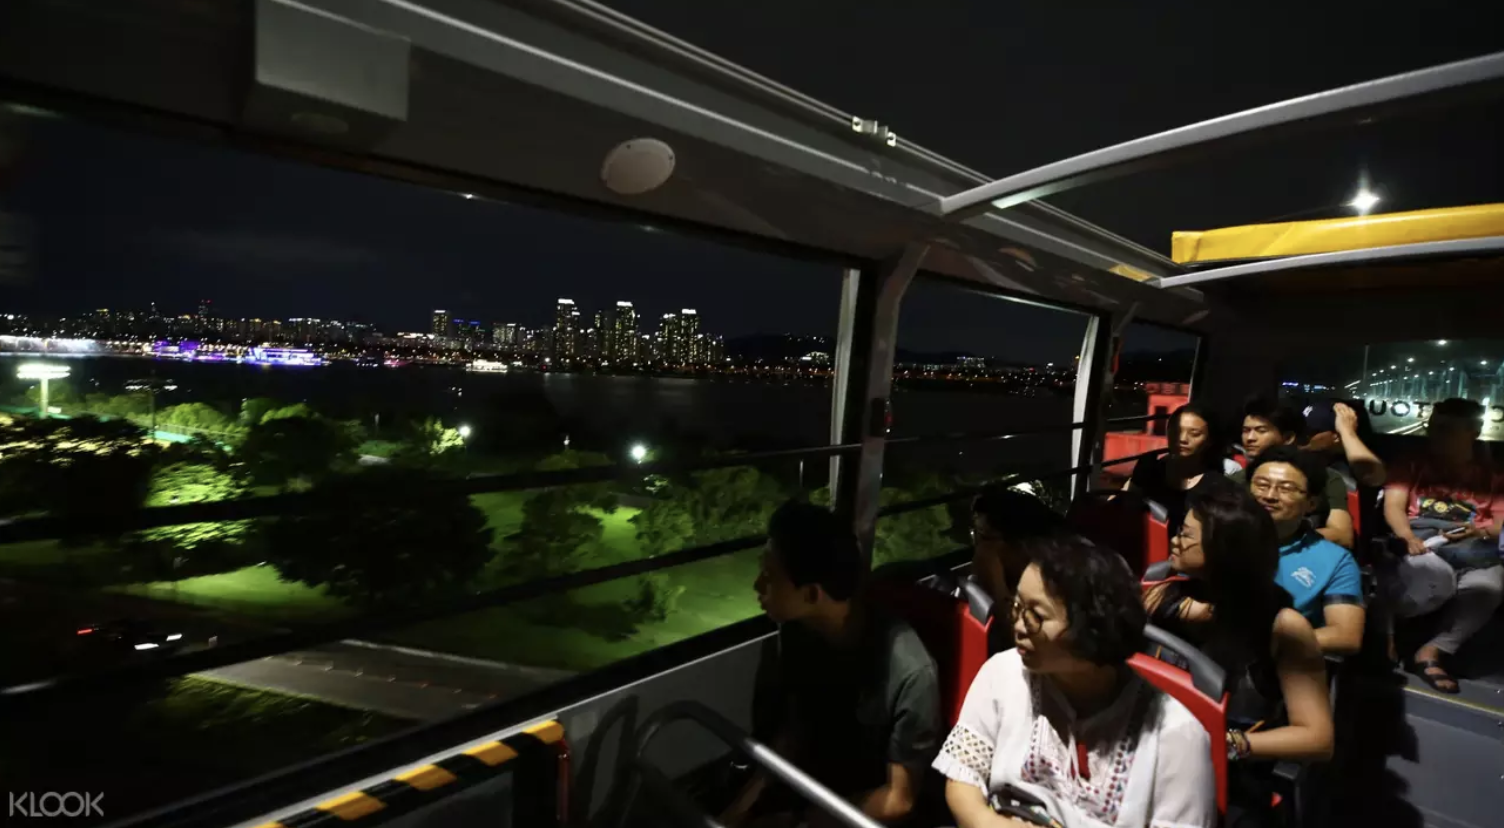 Seoul Tower via the Seoul City Tour Bus. Screengrab from Klook